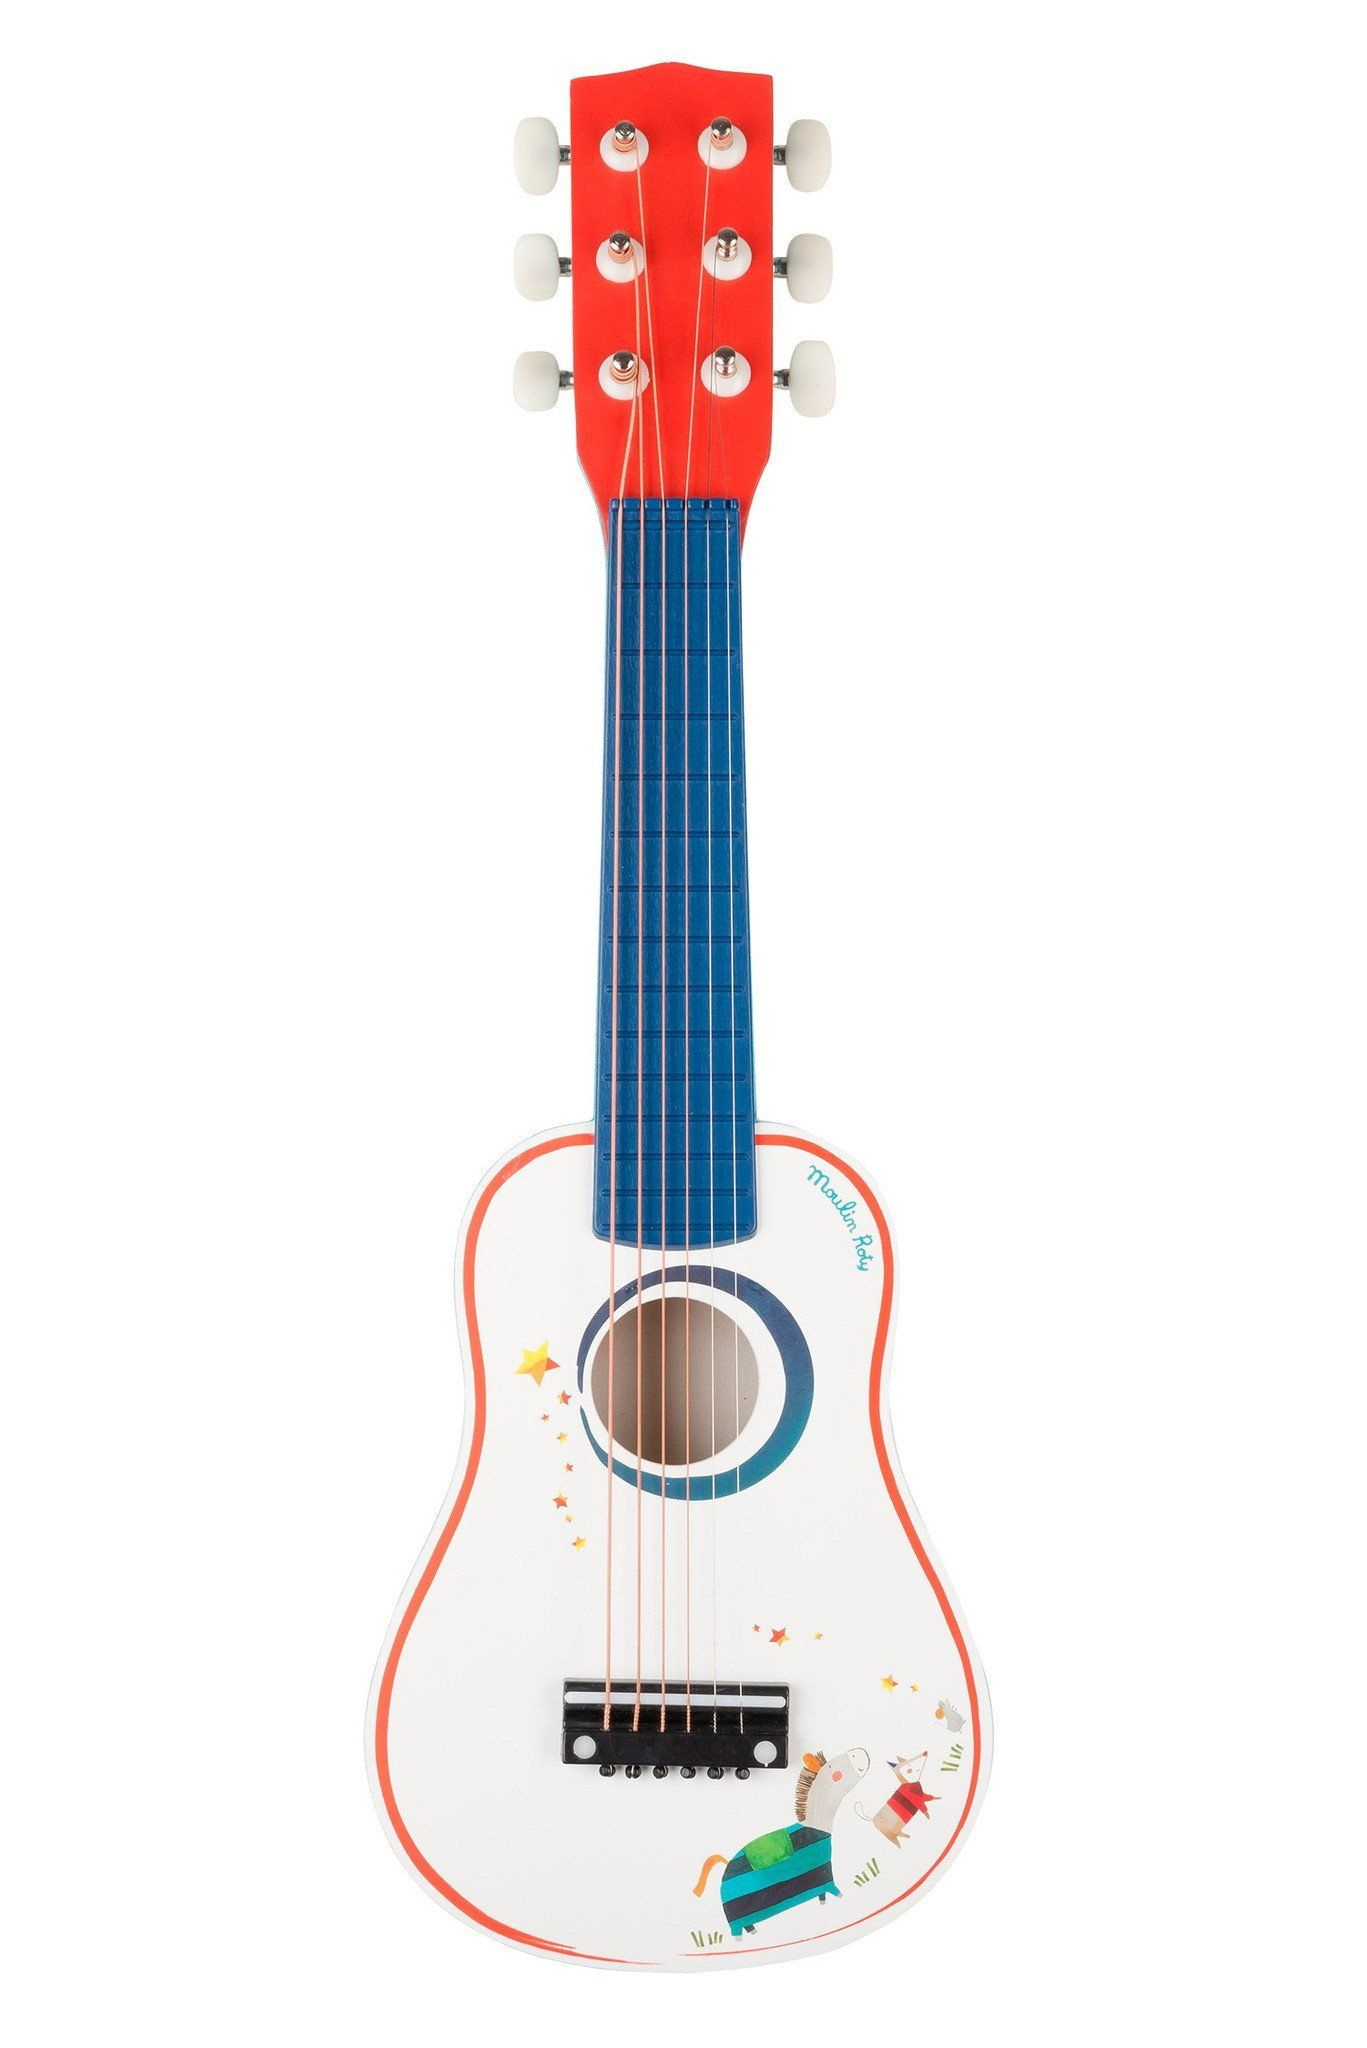 Les Zig Et Zag Guitar By Moulin Roty